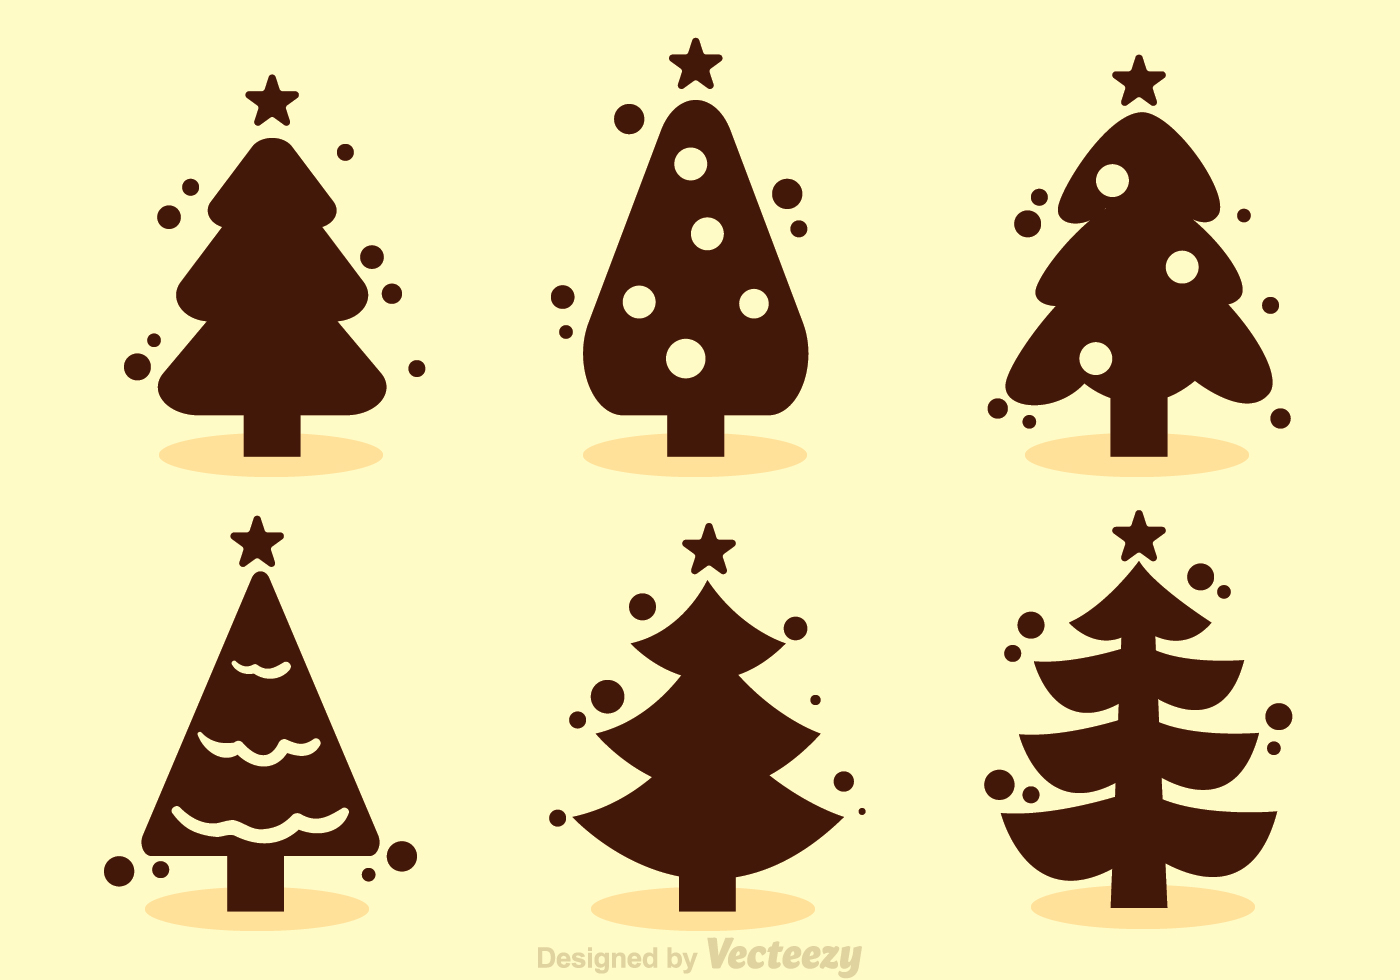 Christmas tree silhouette vectors download free vectors - Silueta arbol de navidad ...